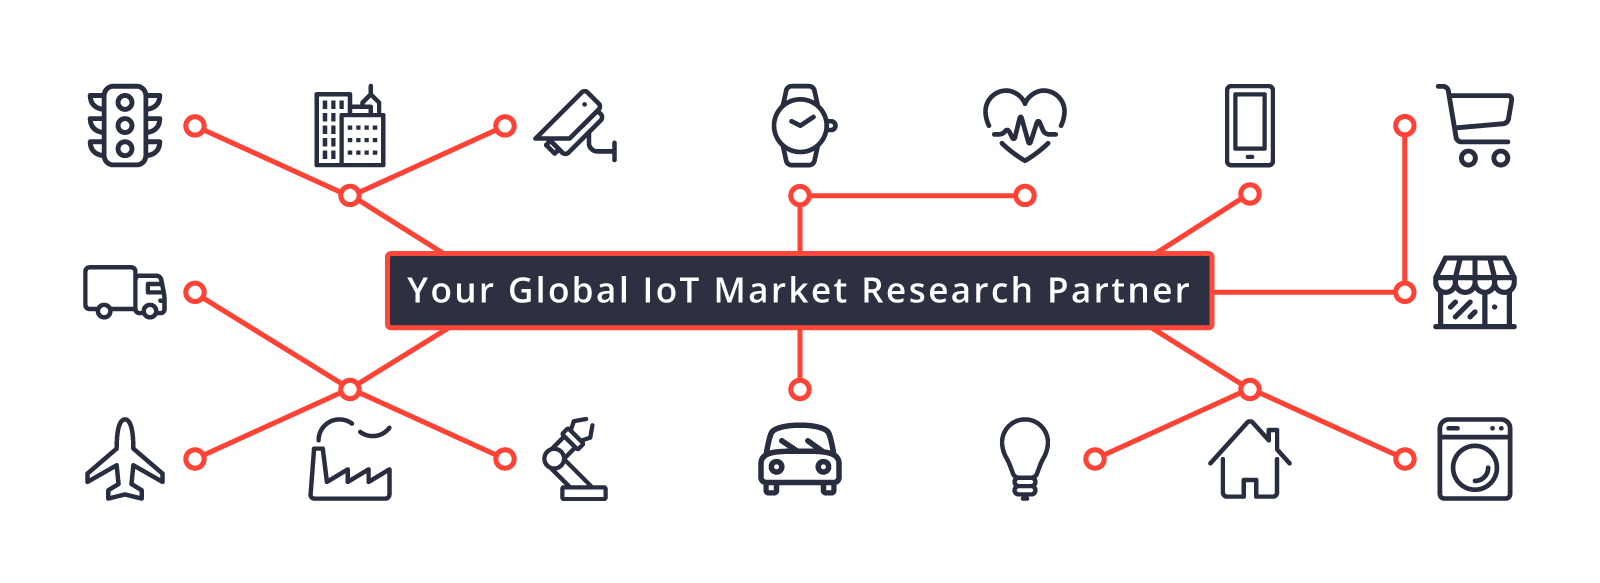 IoT Analytics - #1 in IoT market research